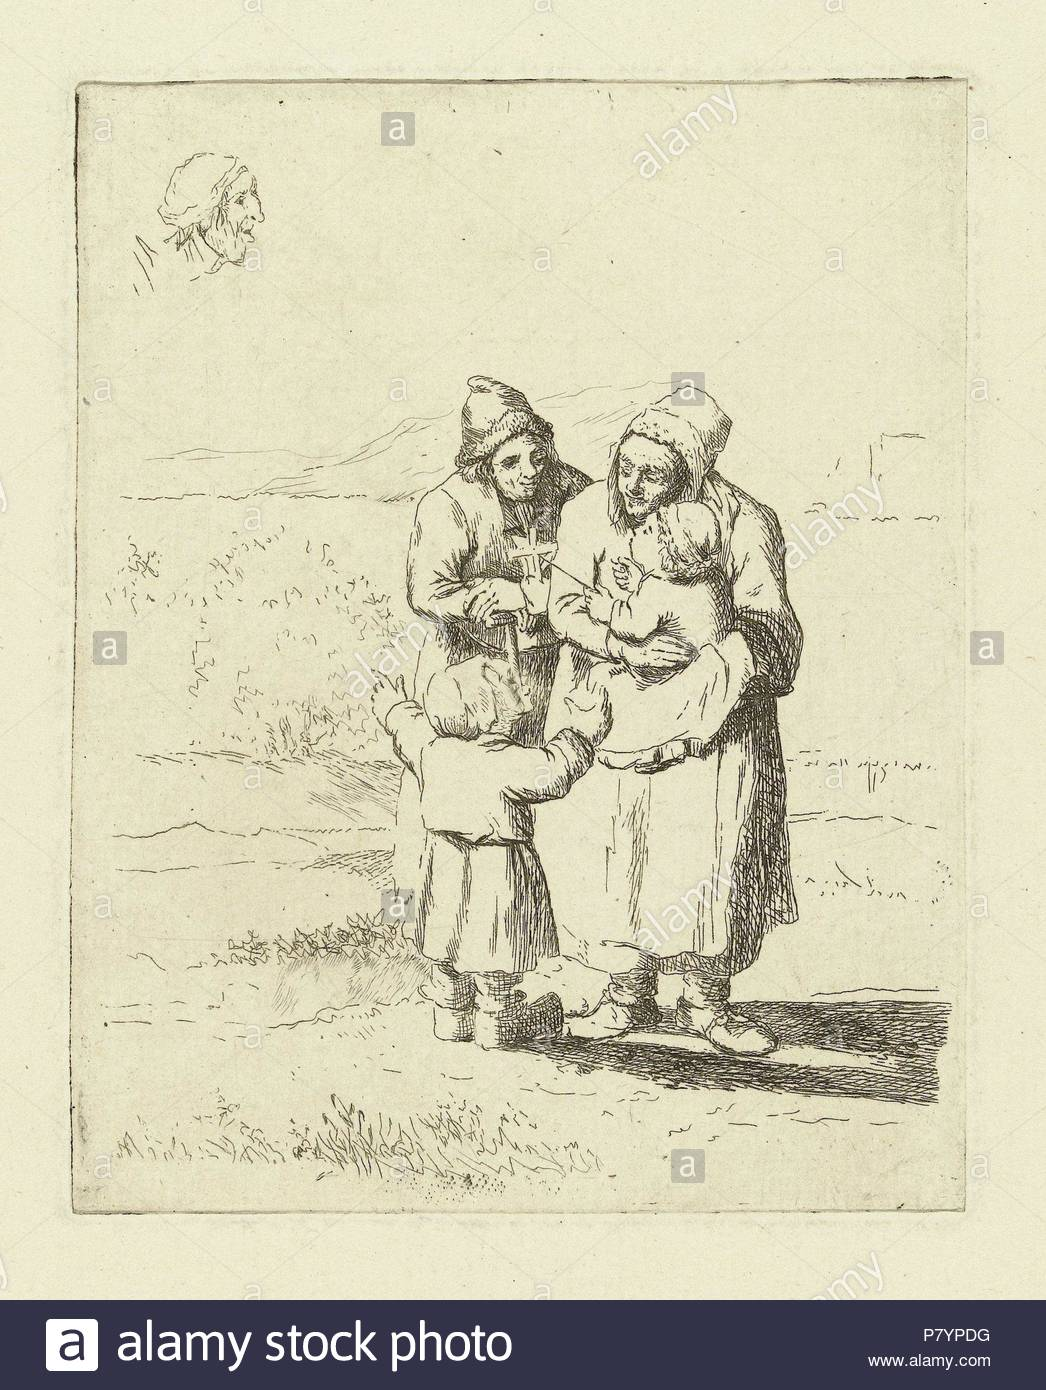 Study Sheet with family with two children, print maker: Marie Lambertine Coclers, 1776 - 1815. - Stock Image